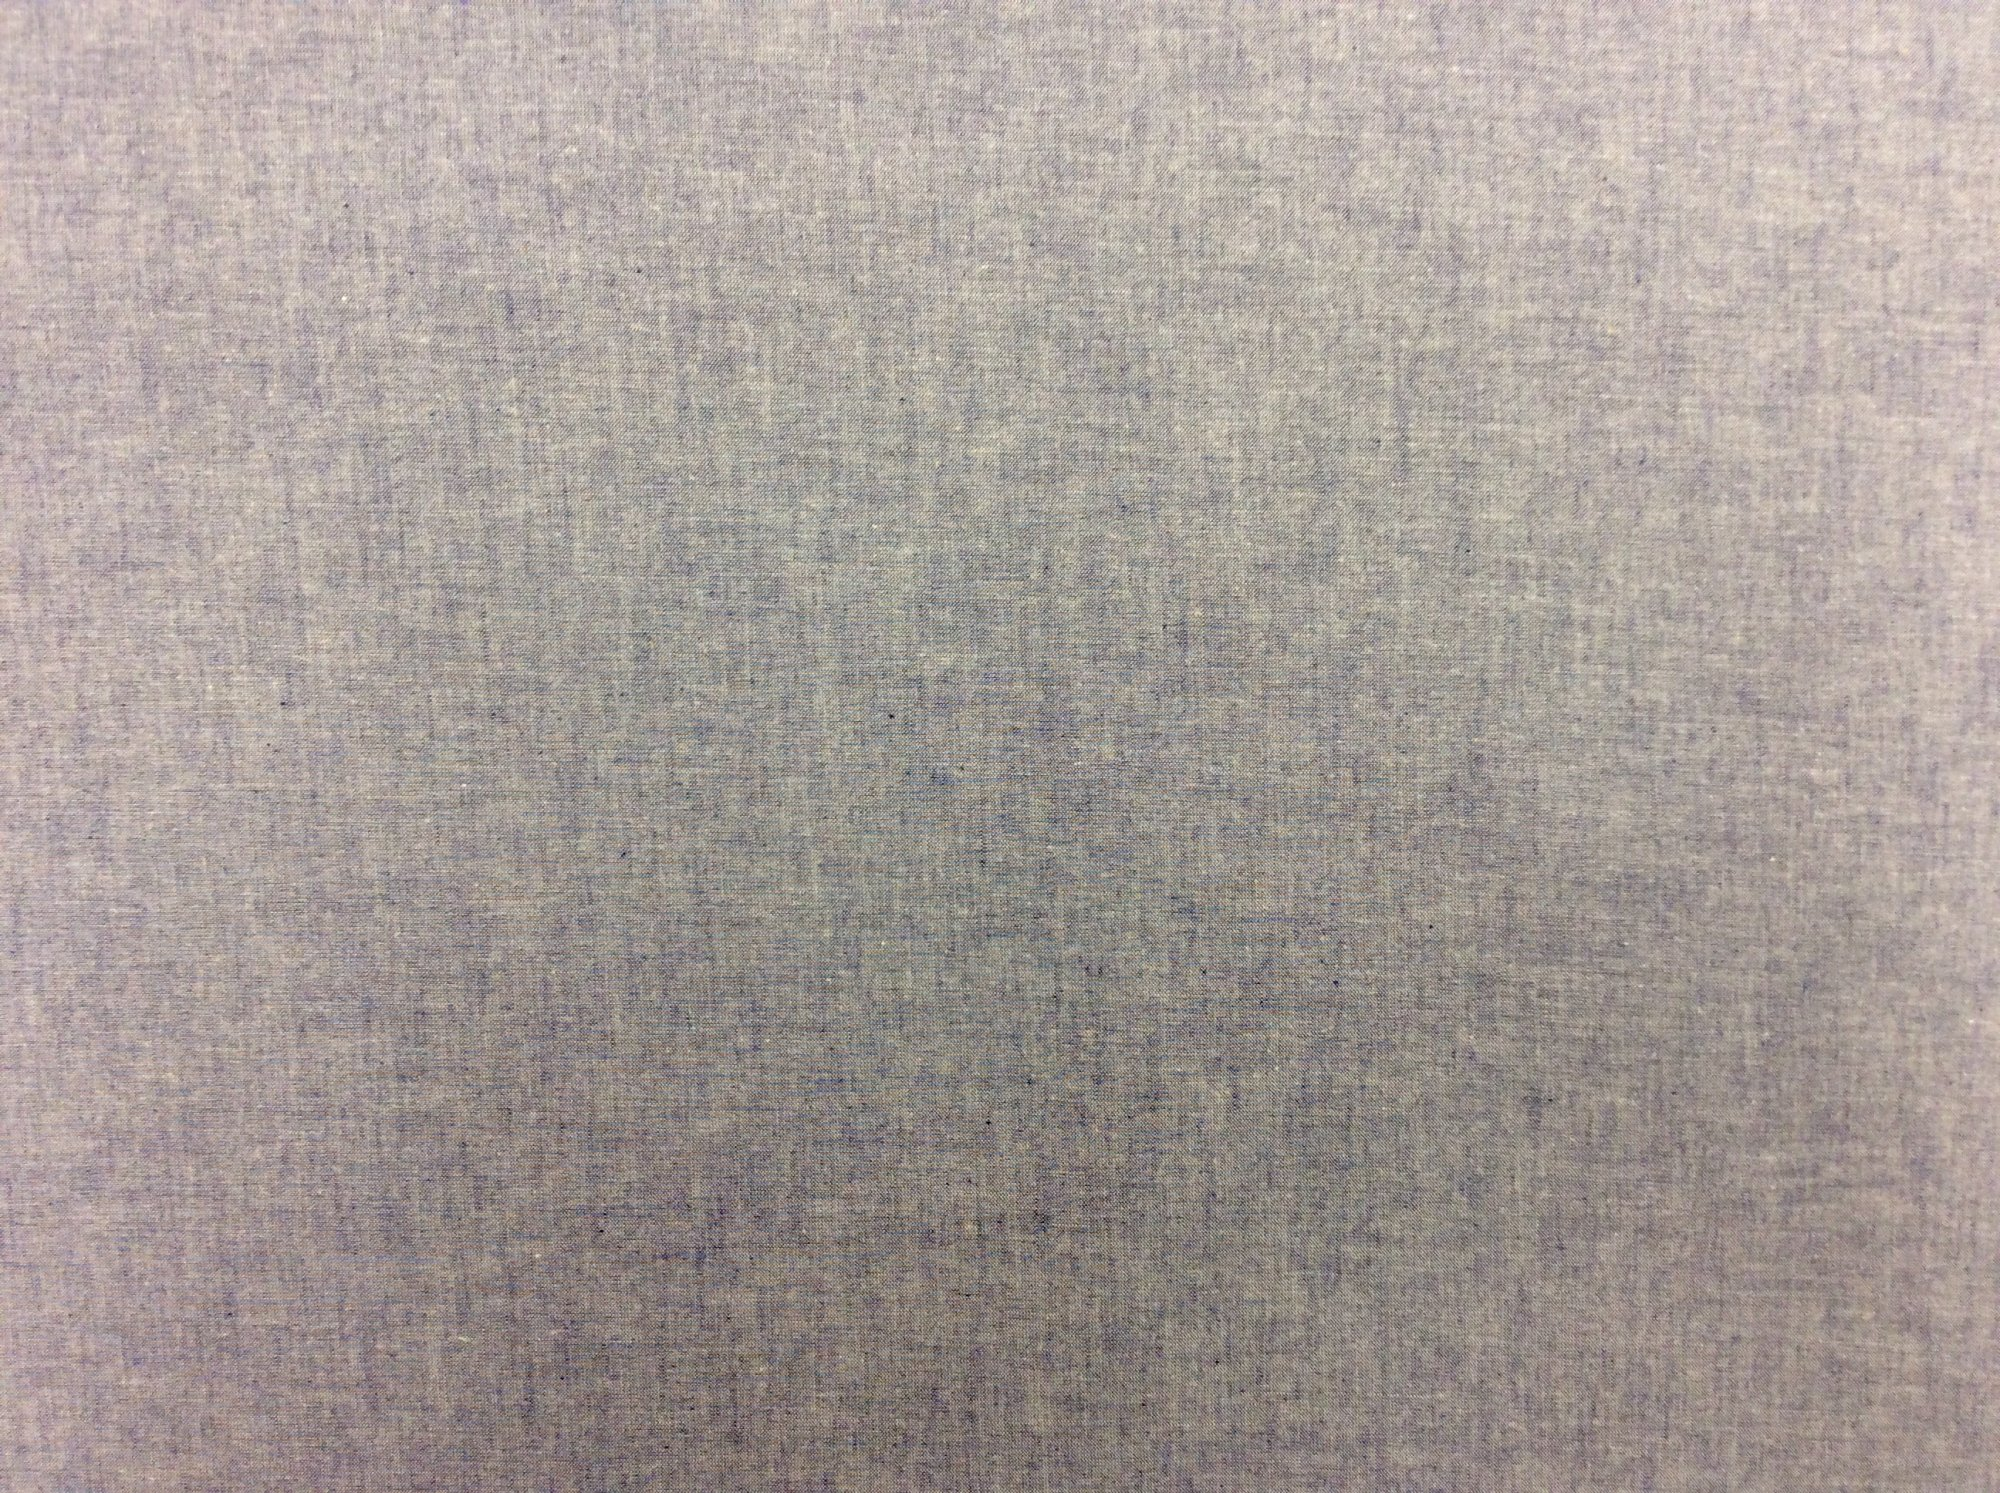 Chambray Lightweight Denim 100% Cotton Apparel Sewing Fabric FT169